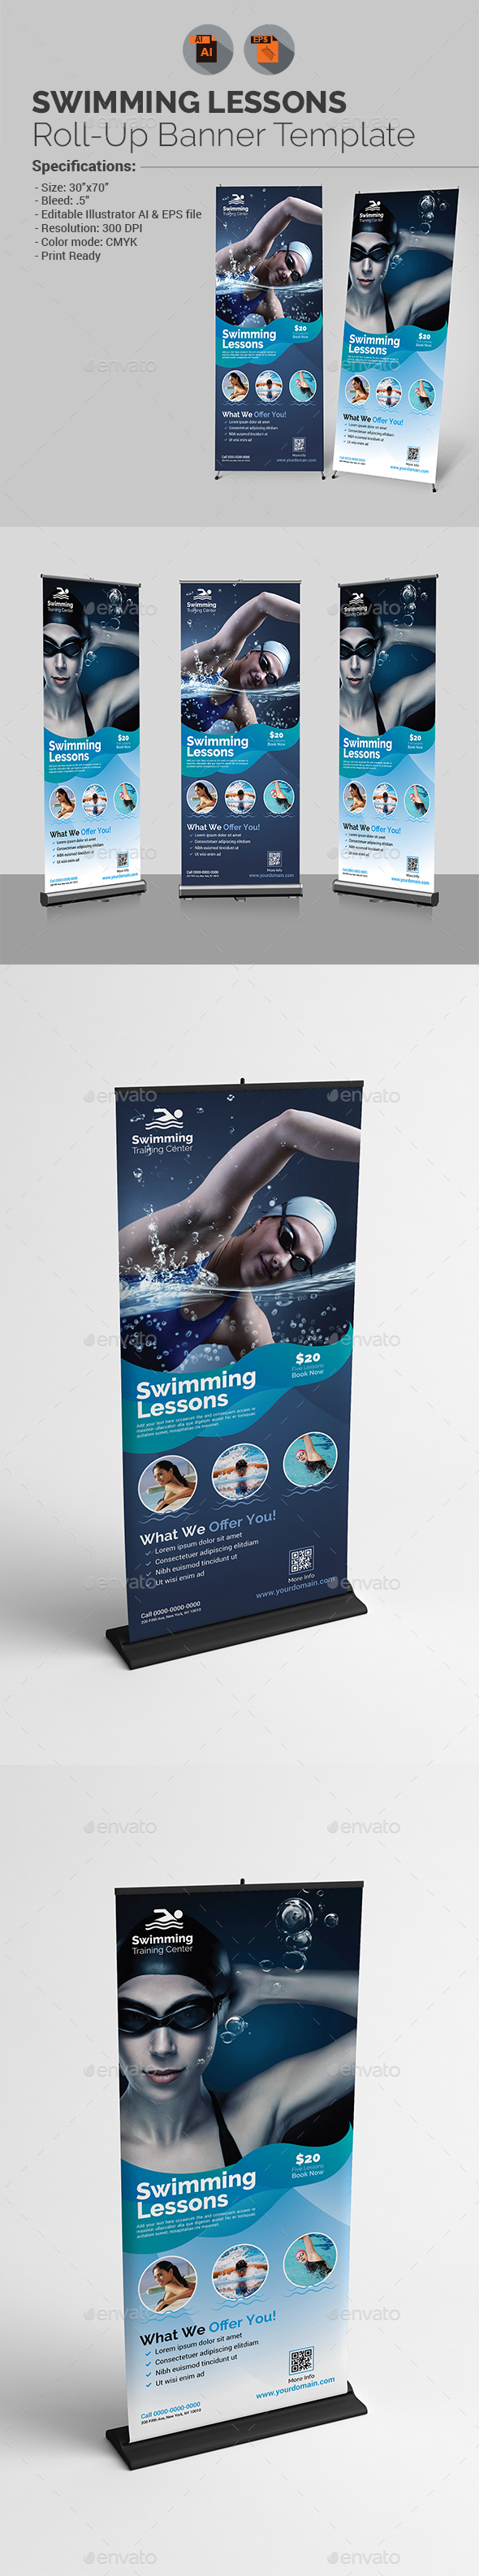 Swimming Lessons Roll-Up Banner Template - Signage Print Templates